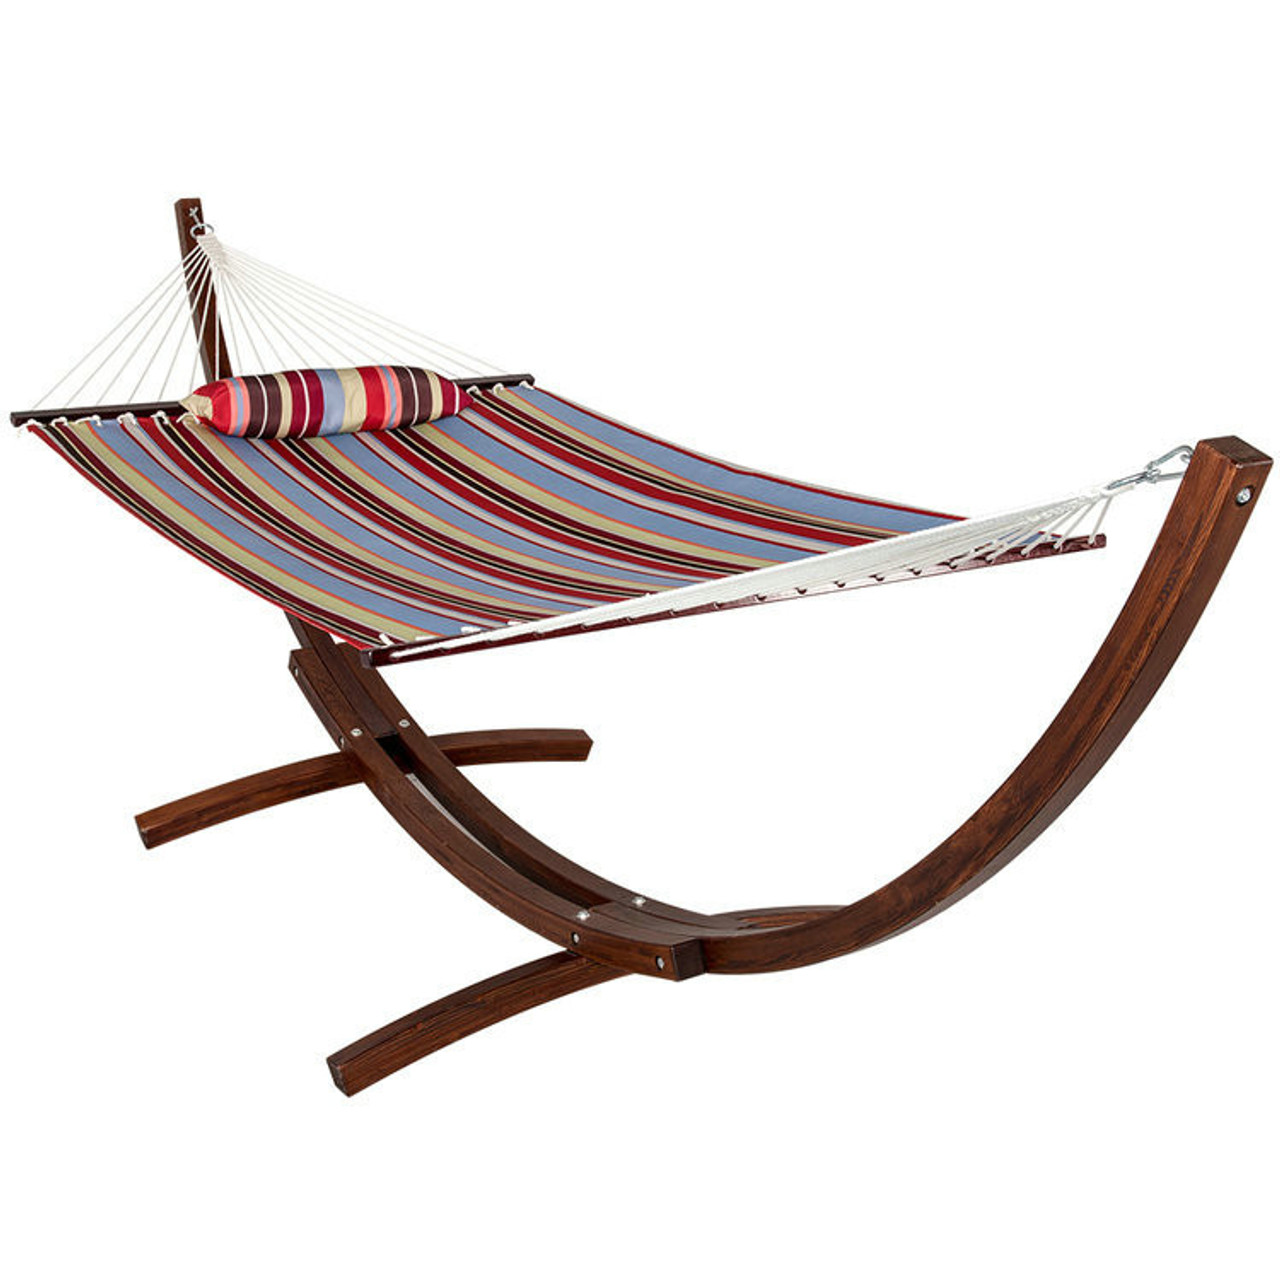 lazy daze hammocks 12 ft  wood arc hammock stand with 2 person double layer polyester lazydaze hammocks 12 ft  wood arc hammock stand with 2 person      rh   sundaleoutdoor